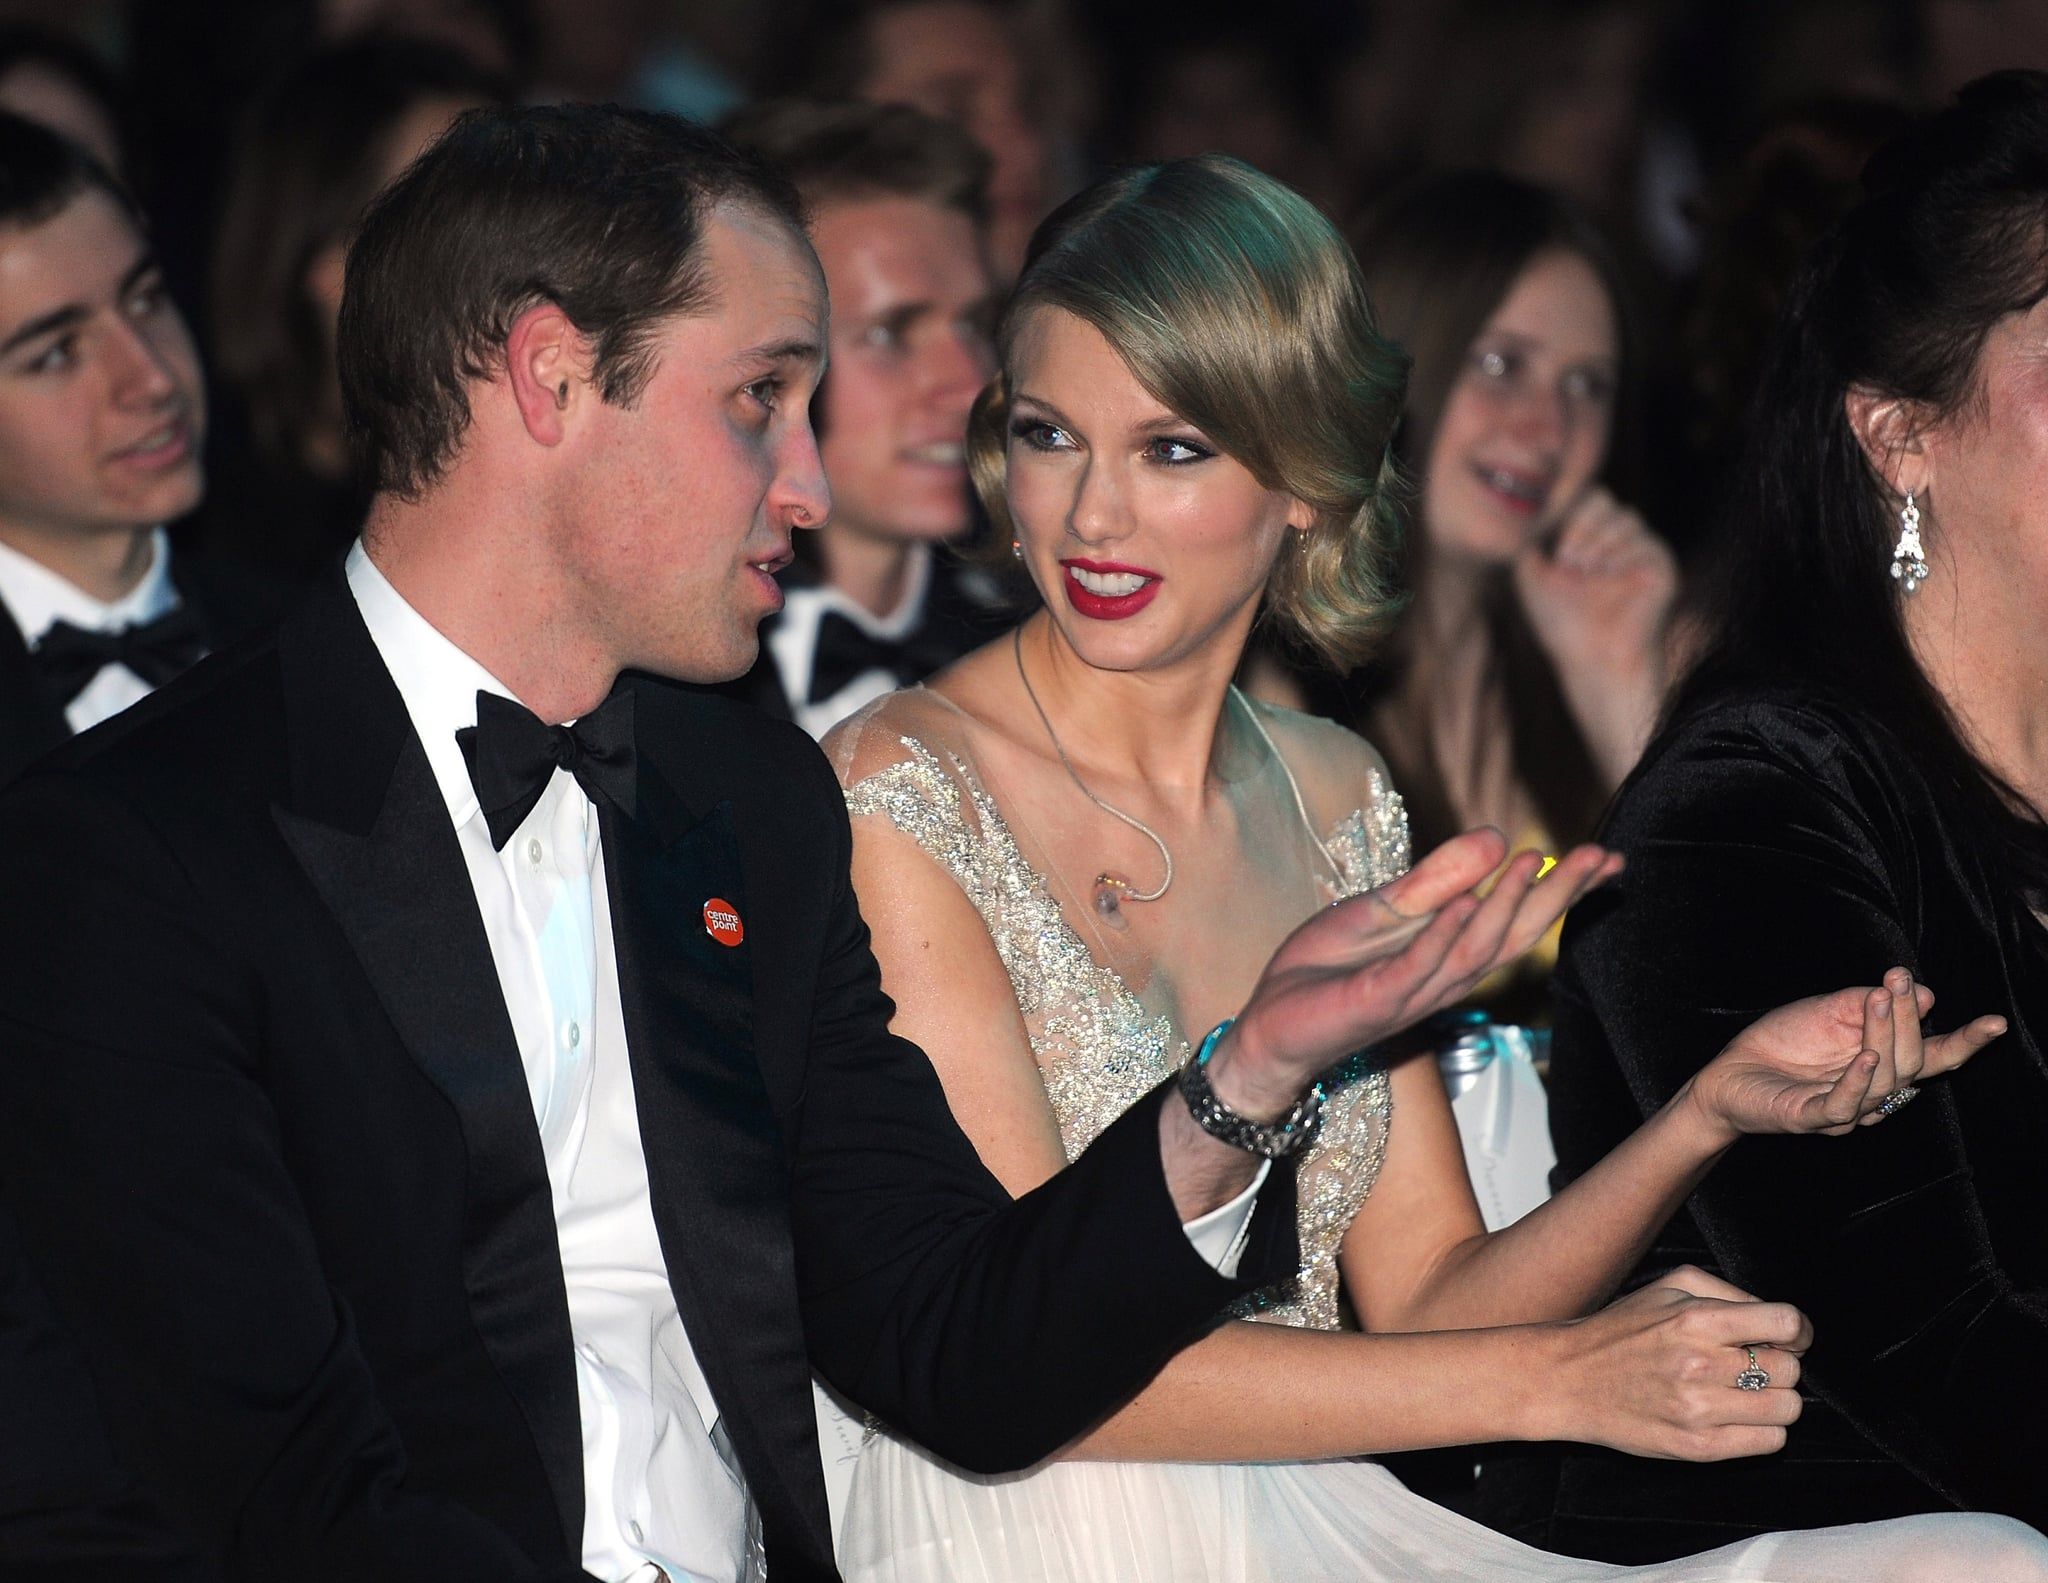 Prince William sat next to Taylor Swift at the Winter Whites Gala in London in November 2013.